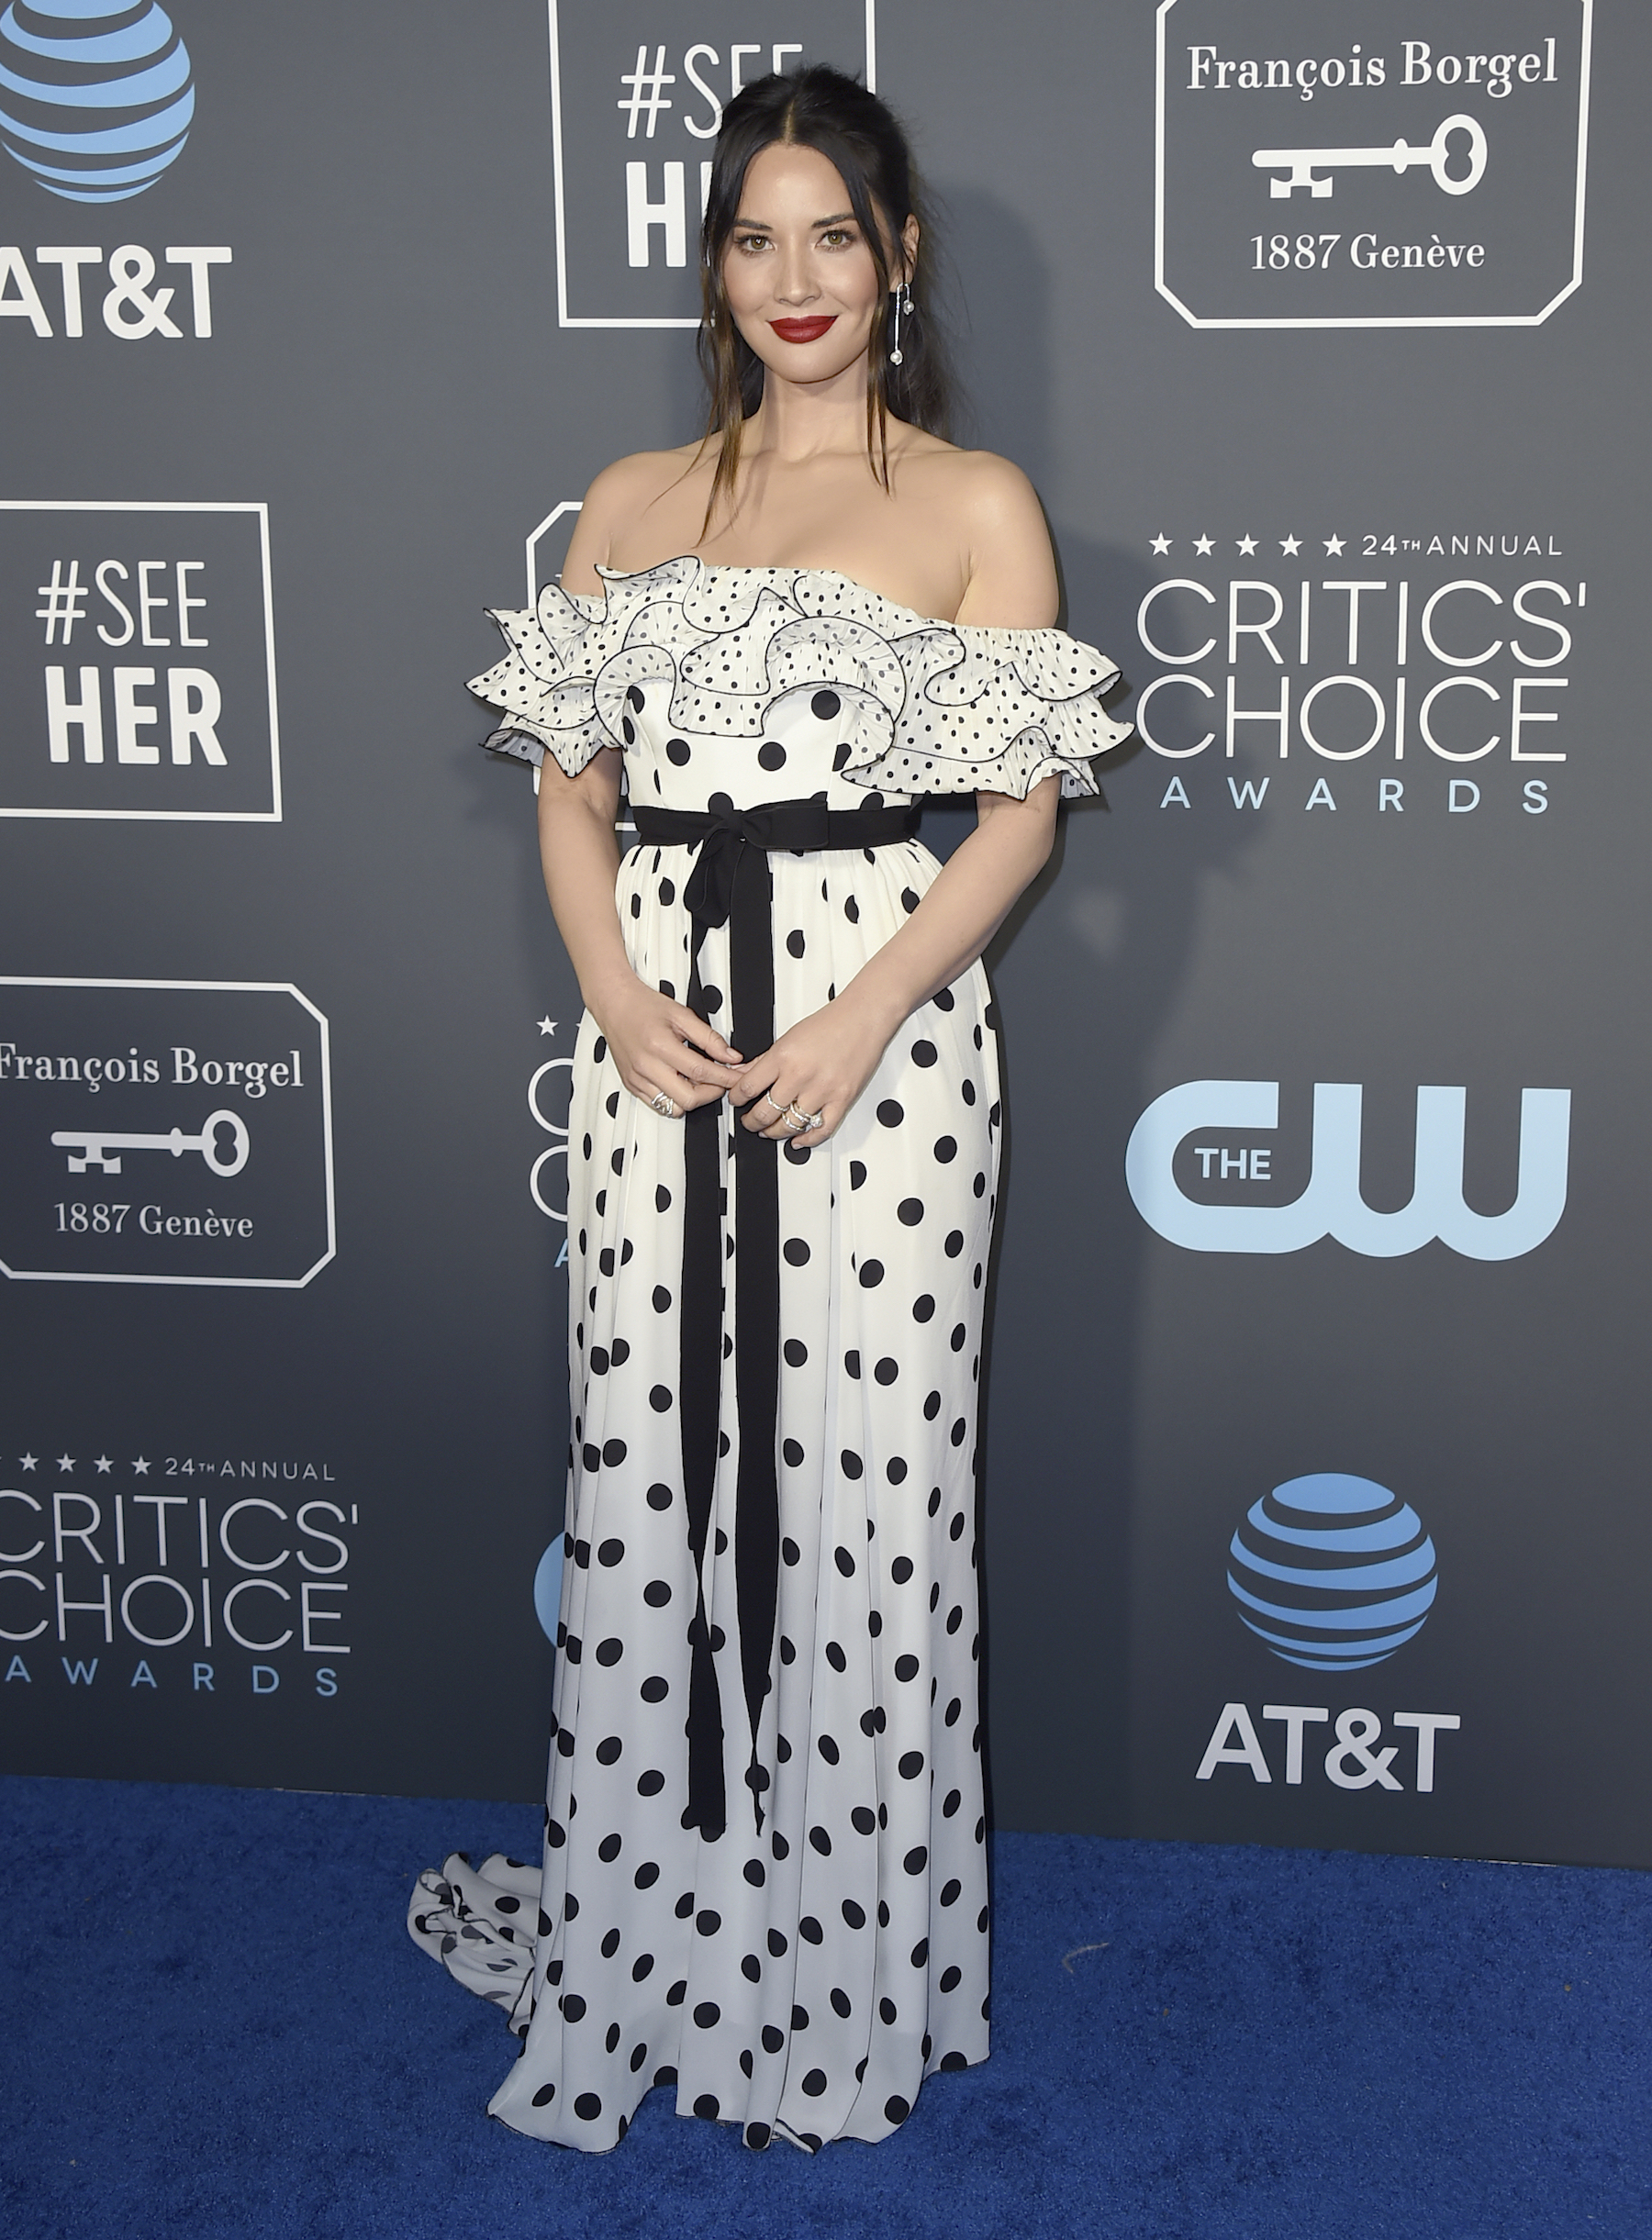 <div class='meta'><div class='origin-logo' data-origin='AP'></div><span class='caption-text' data-credit='Jordan Strauss/Invision/AP'>Olivia Munn arrives at the 24th annual Critics' Choice Awards on Sunday, Jan. 13, 2019, at the Barker Hangar in Santa Monica, Calif.</span></div>